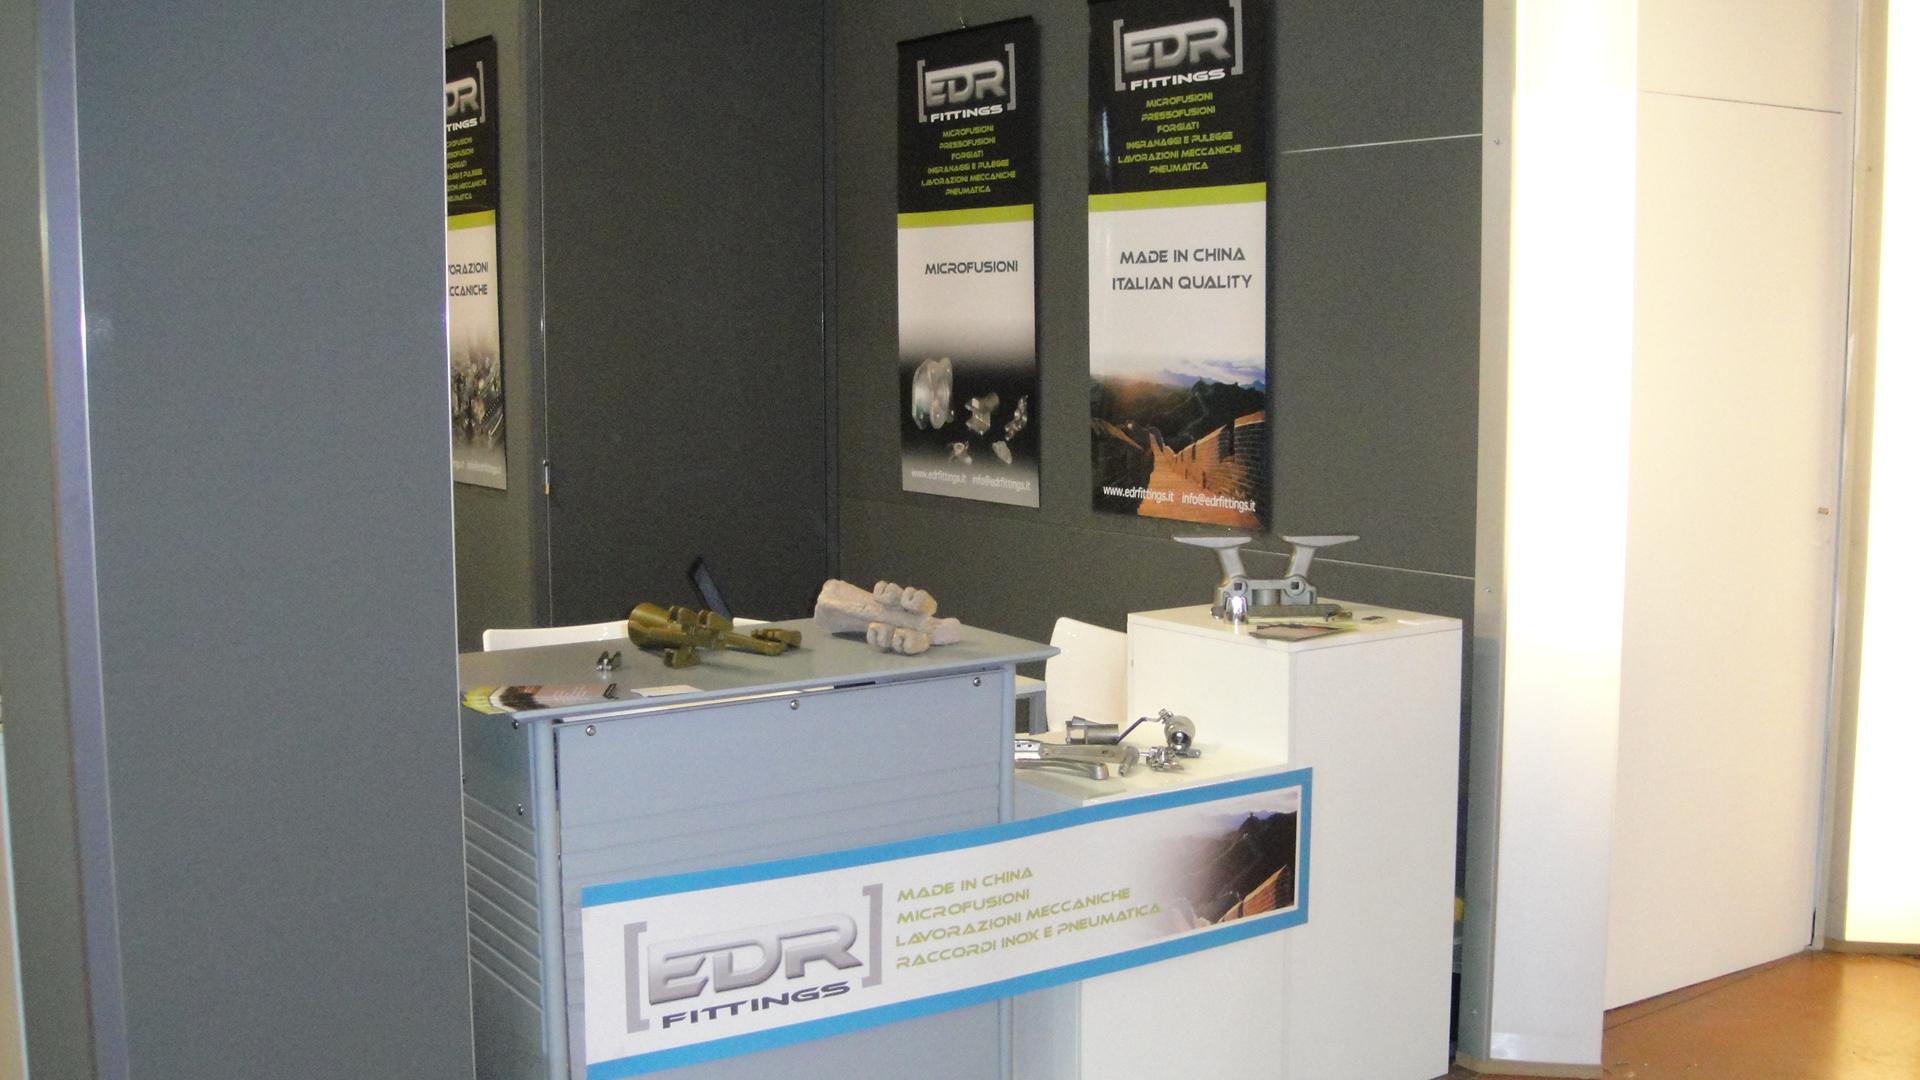 fiera MECSPE 2010 - Edr Fittings